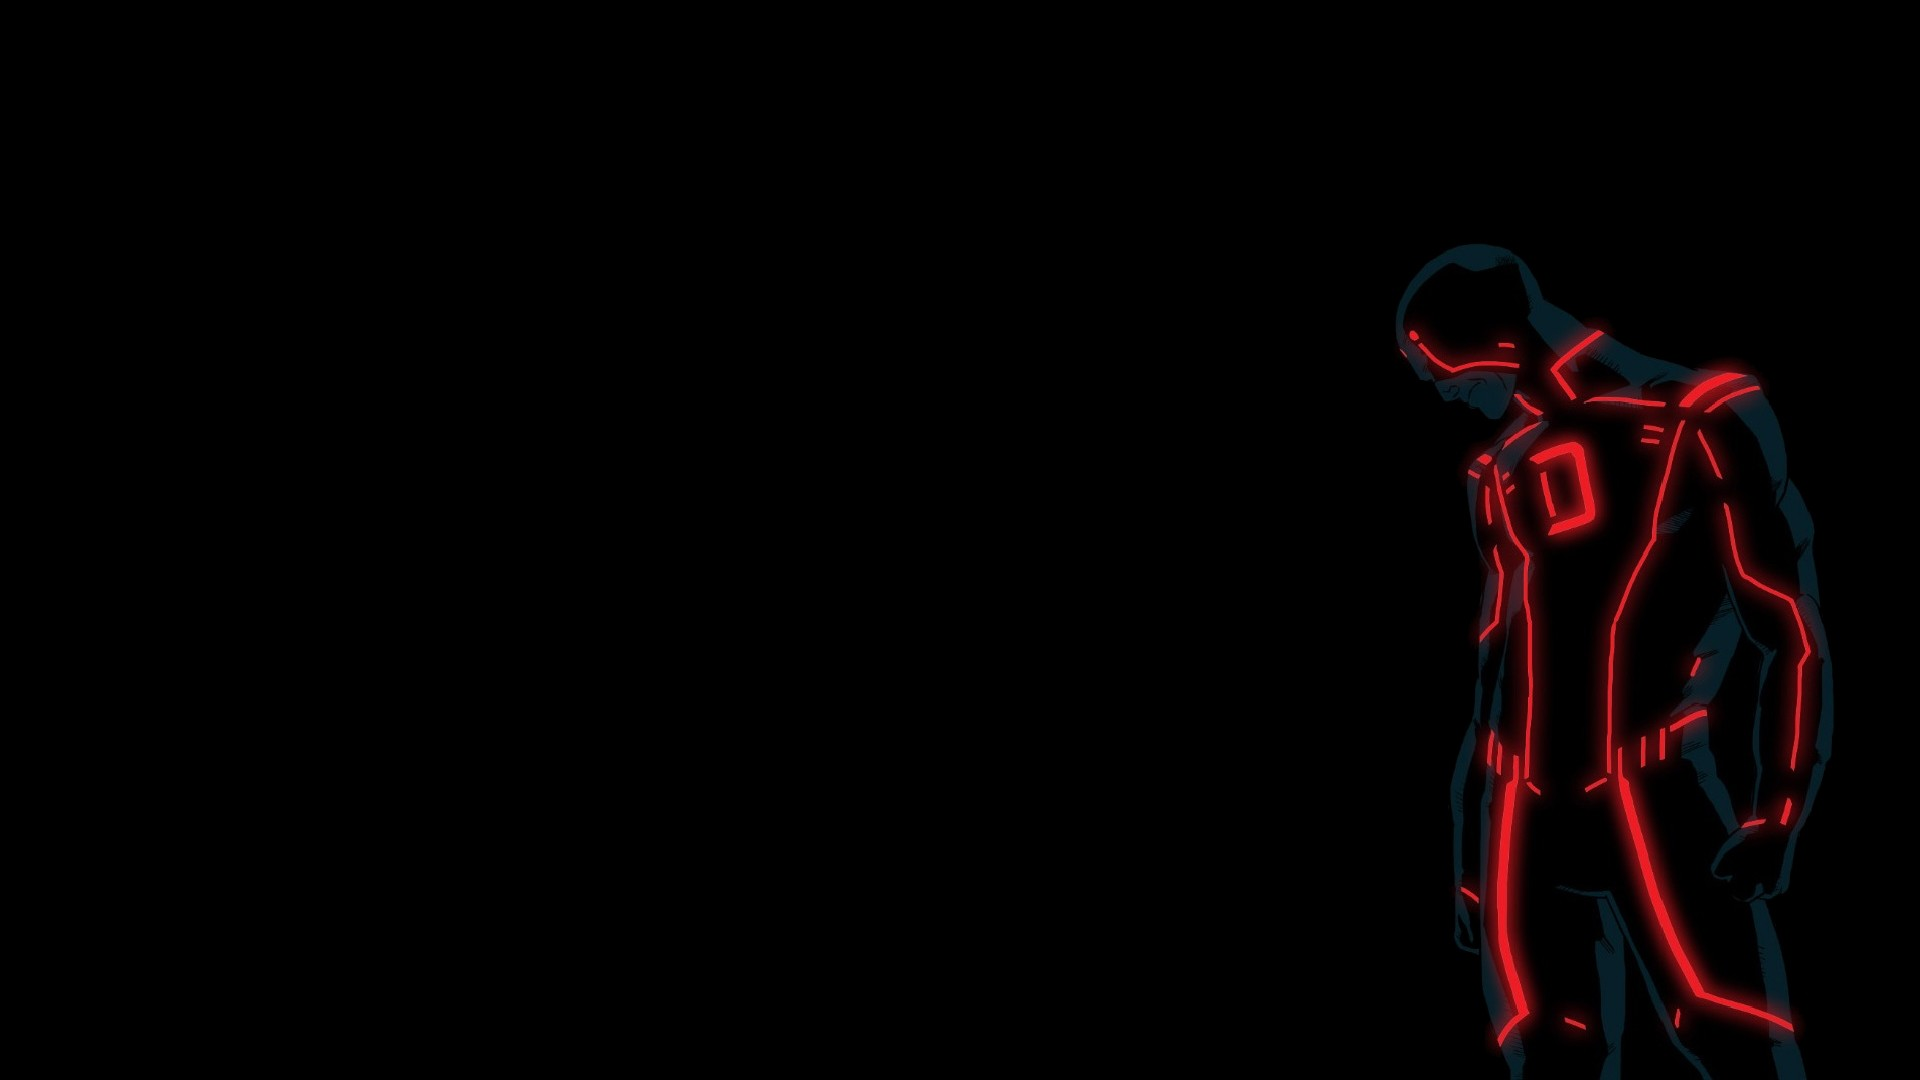 Daredevil high resolution wallpapers · Daredevil high definition wallpapers